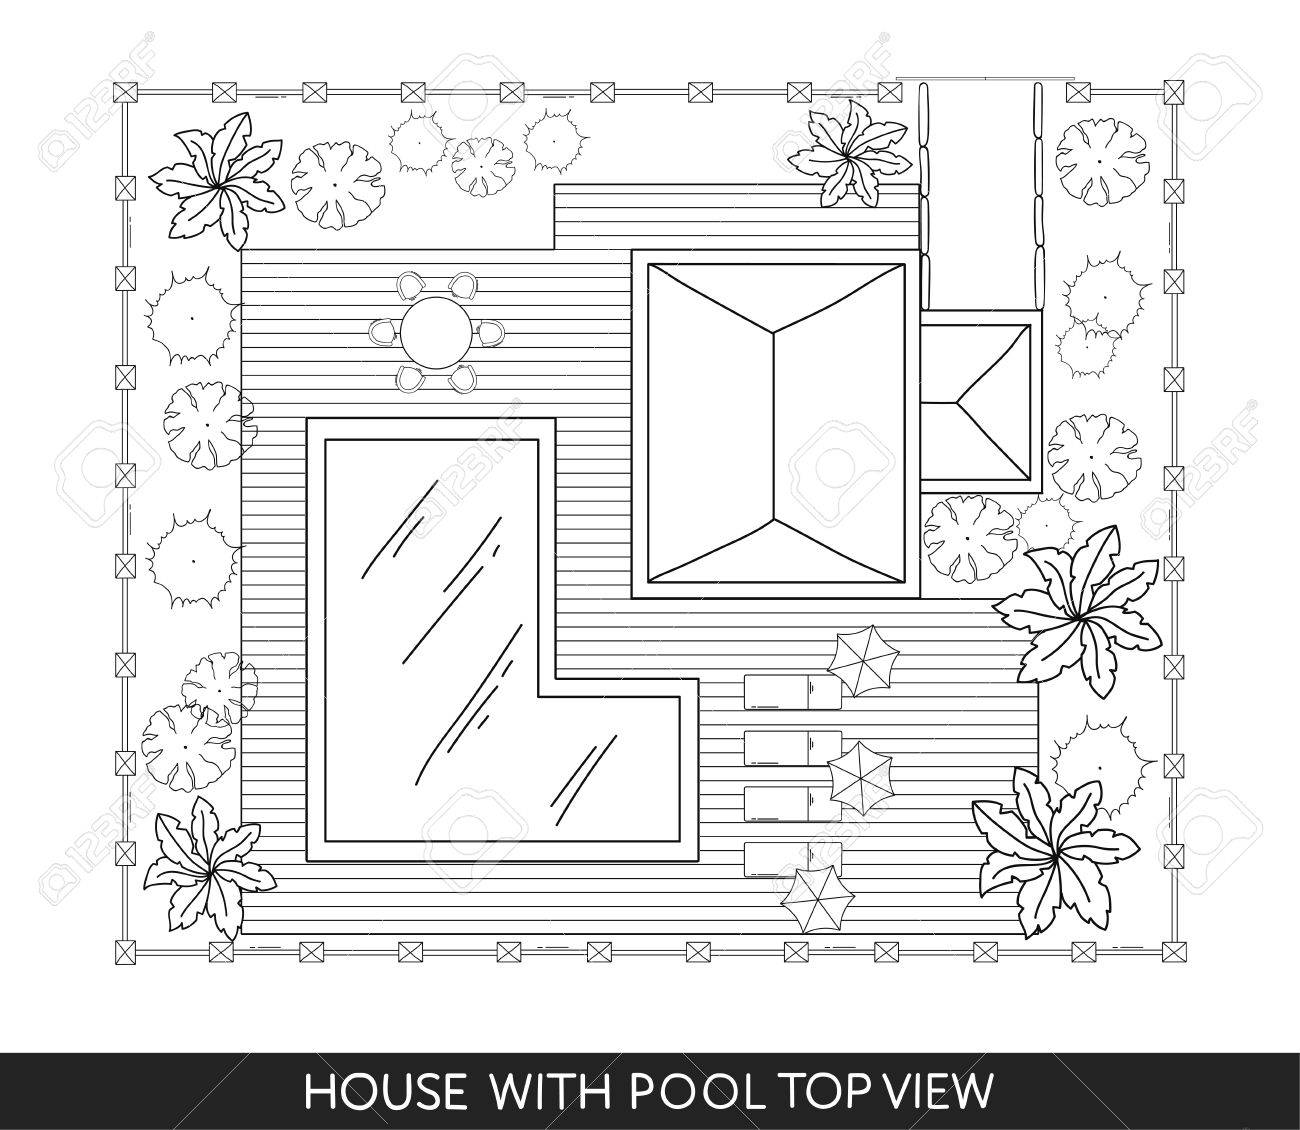 Landscape Plan Of The House With Swimming Pool Furniture And Trees In Top View Stock